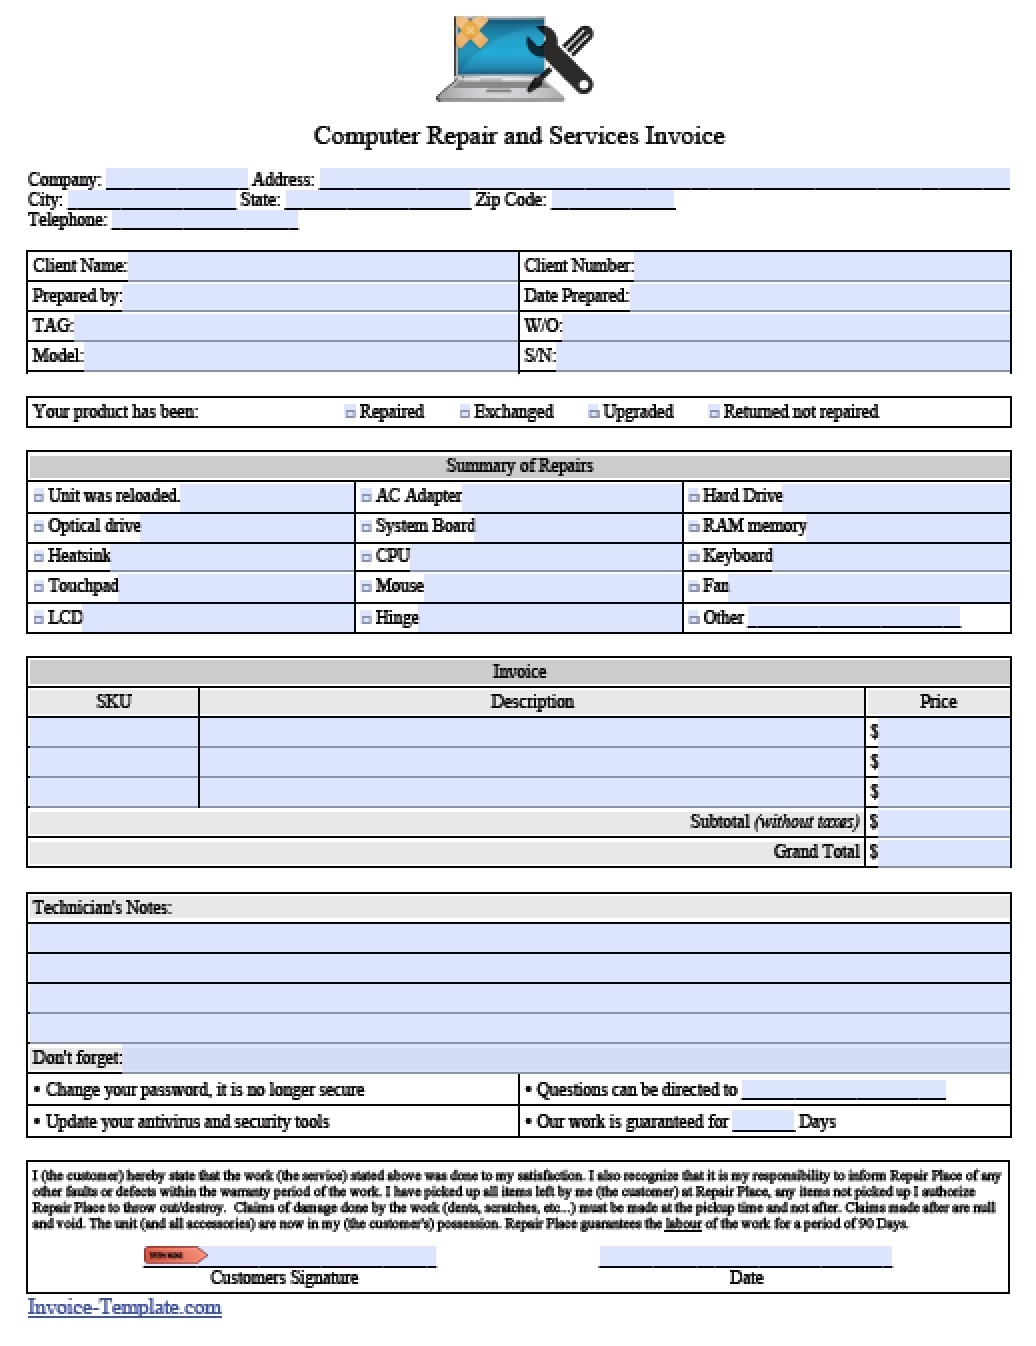 free computer repair service invoice template excel pdf word computer invoice format